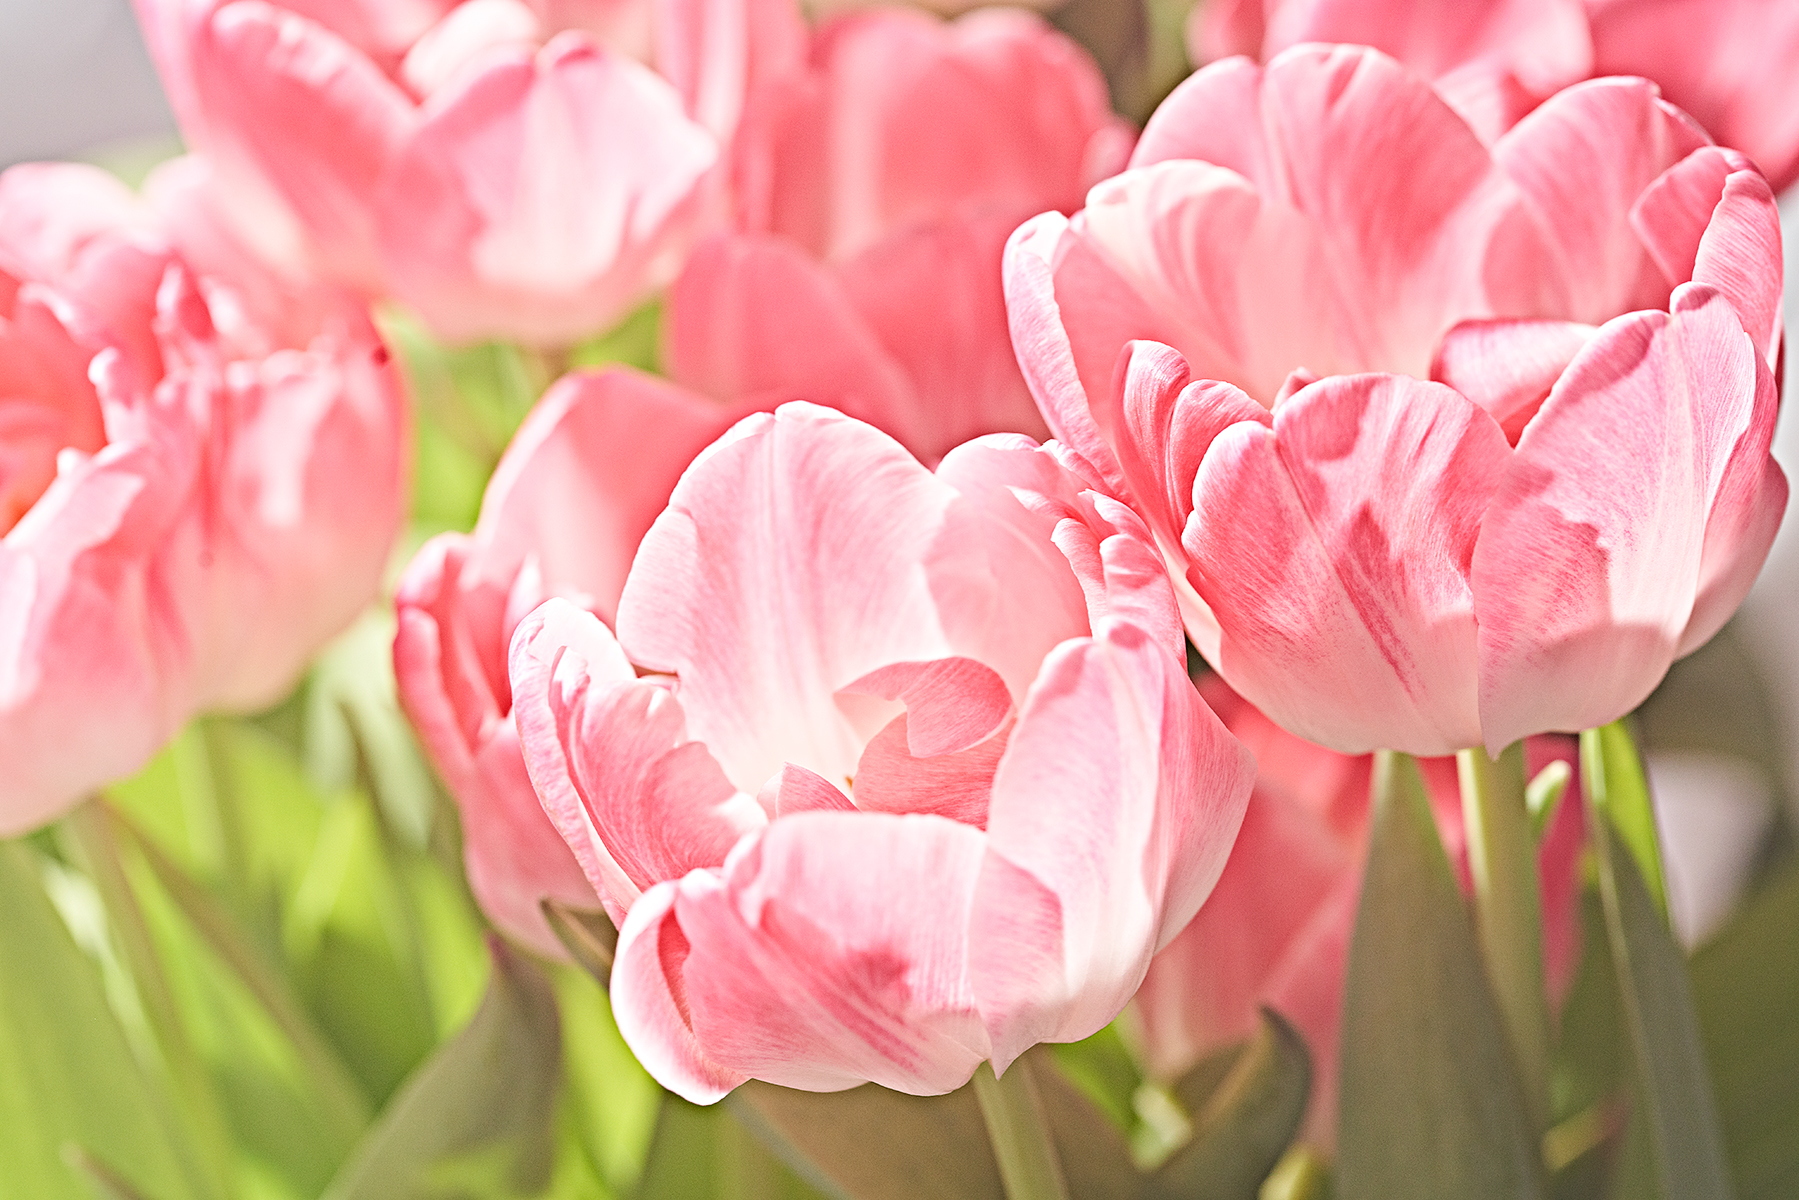 Close-up of pink tulips.